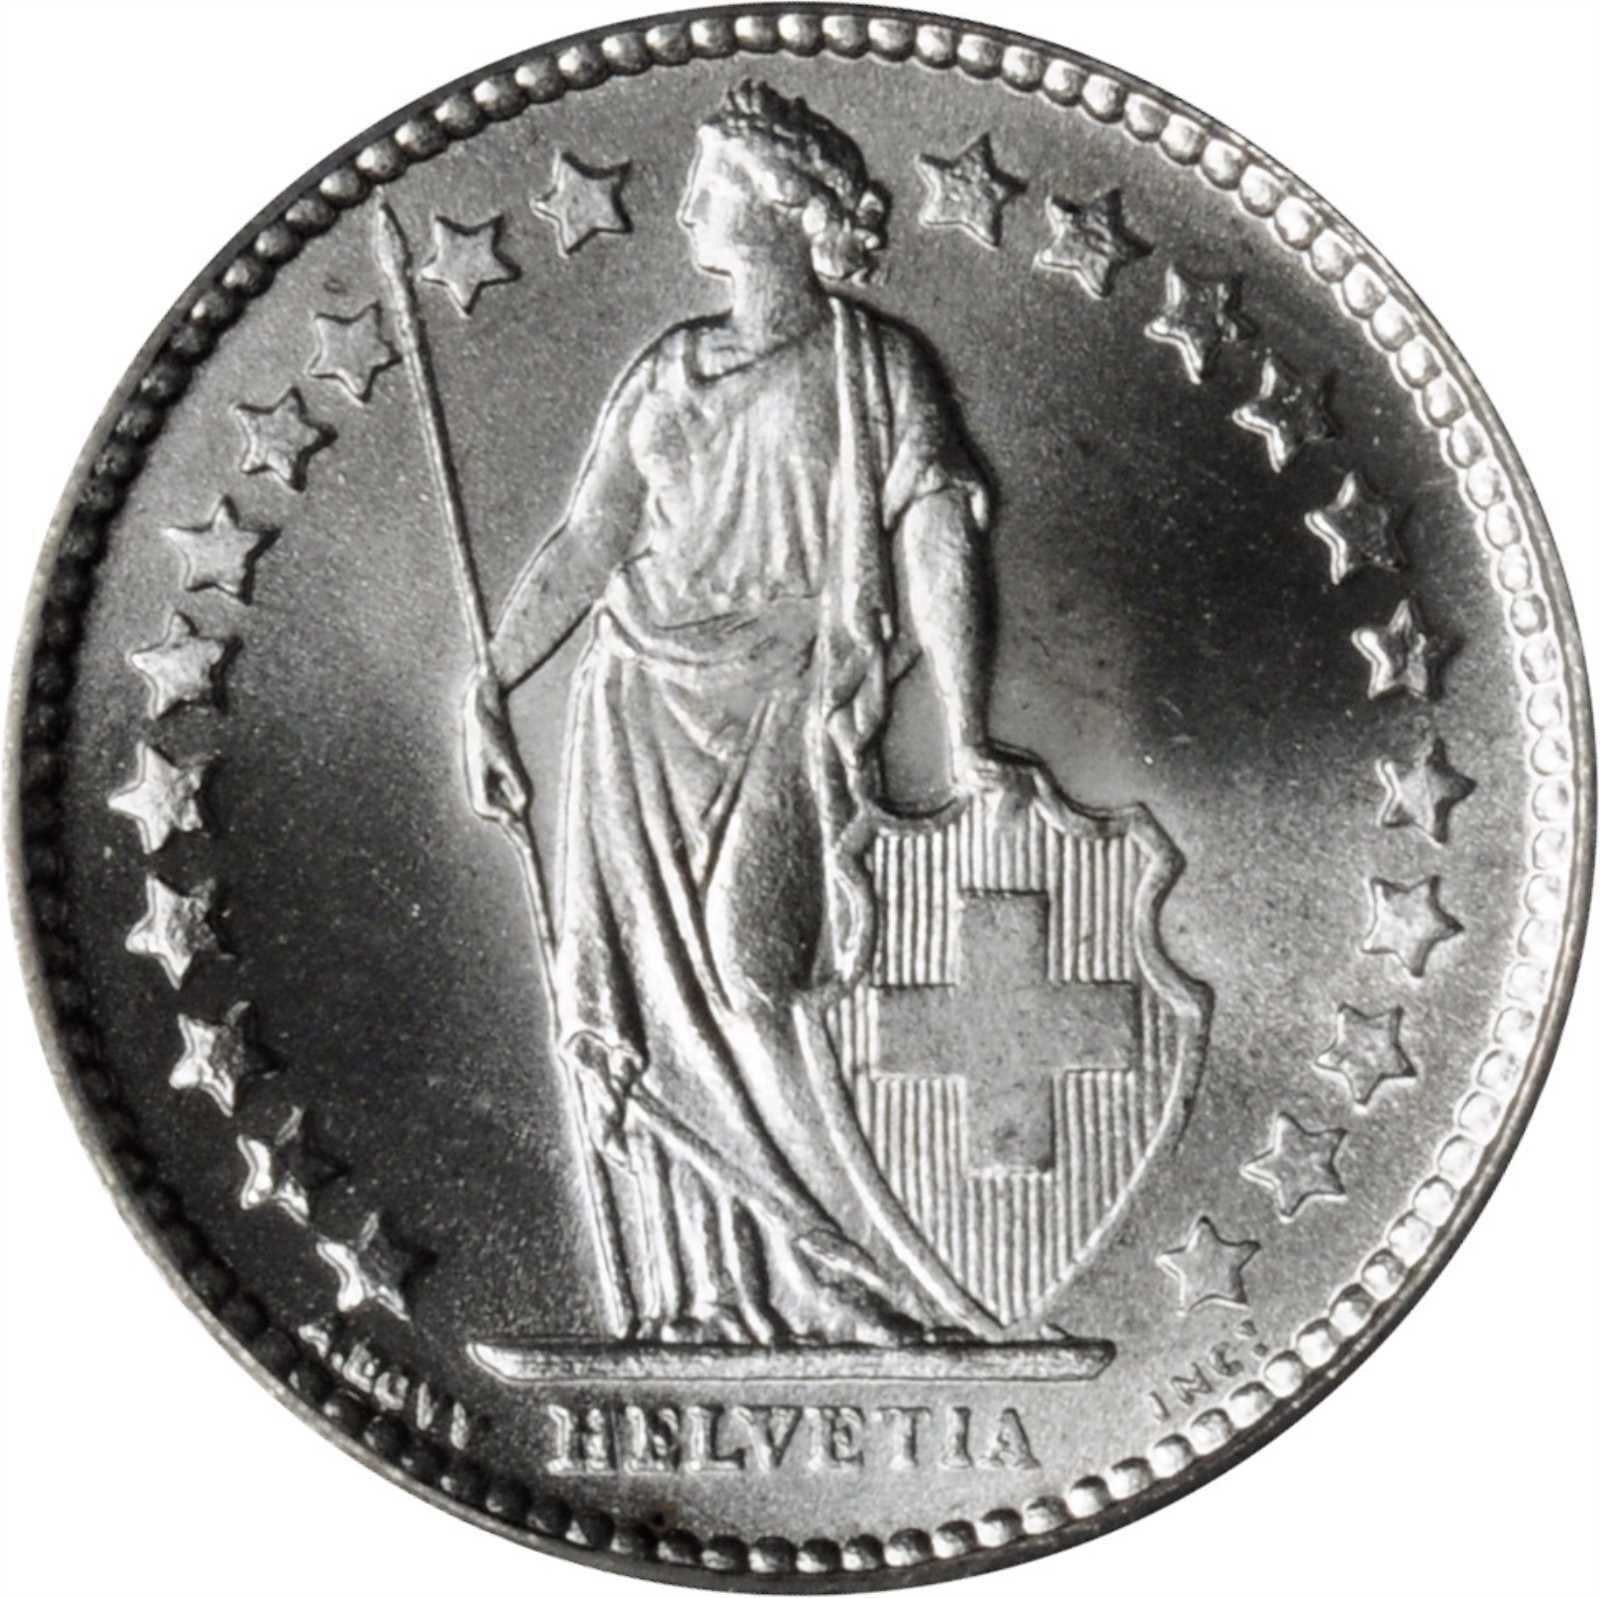 Half Franc 1921: Photo Switzerland 1921-B 1/2 franc